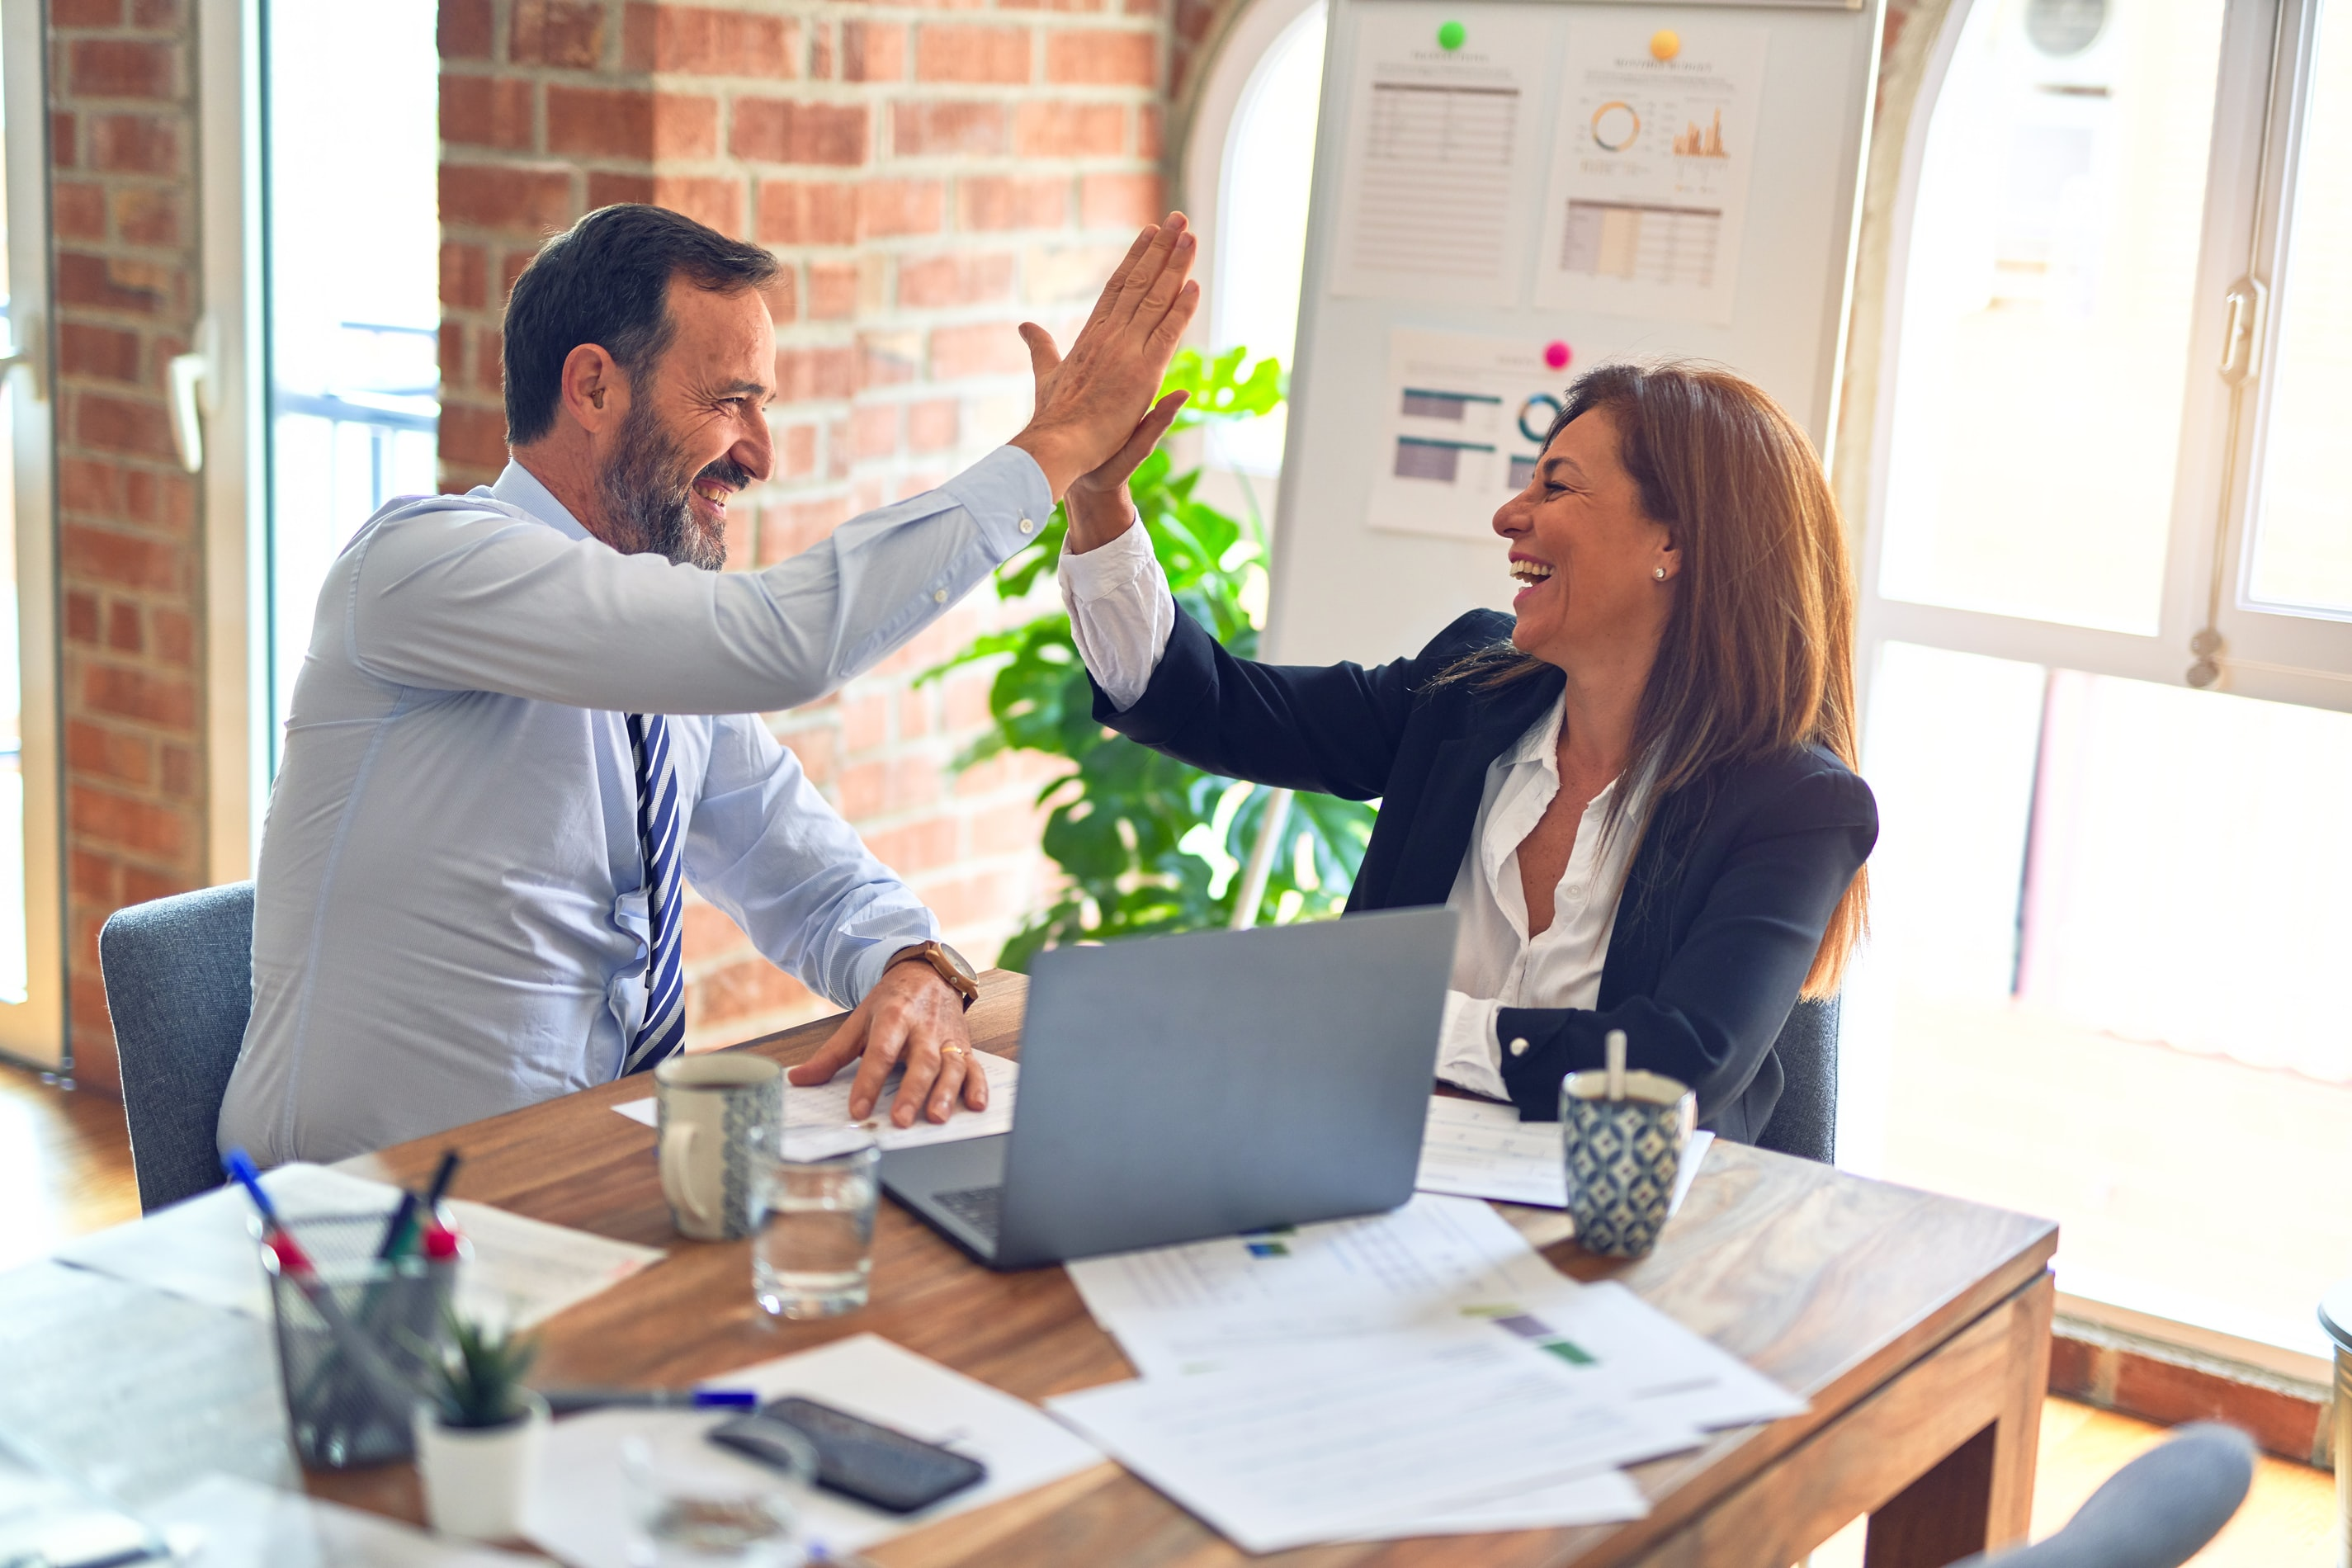 Boost sales productivity with the help of the right business partner